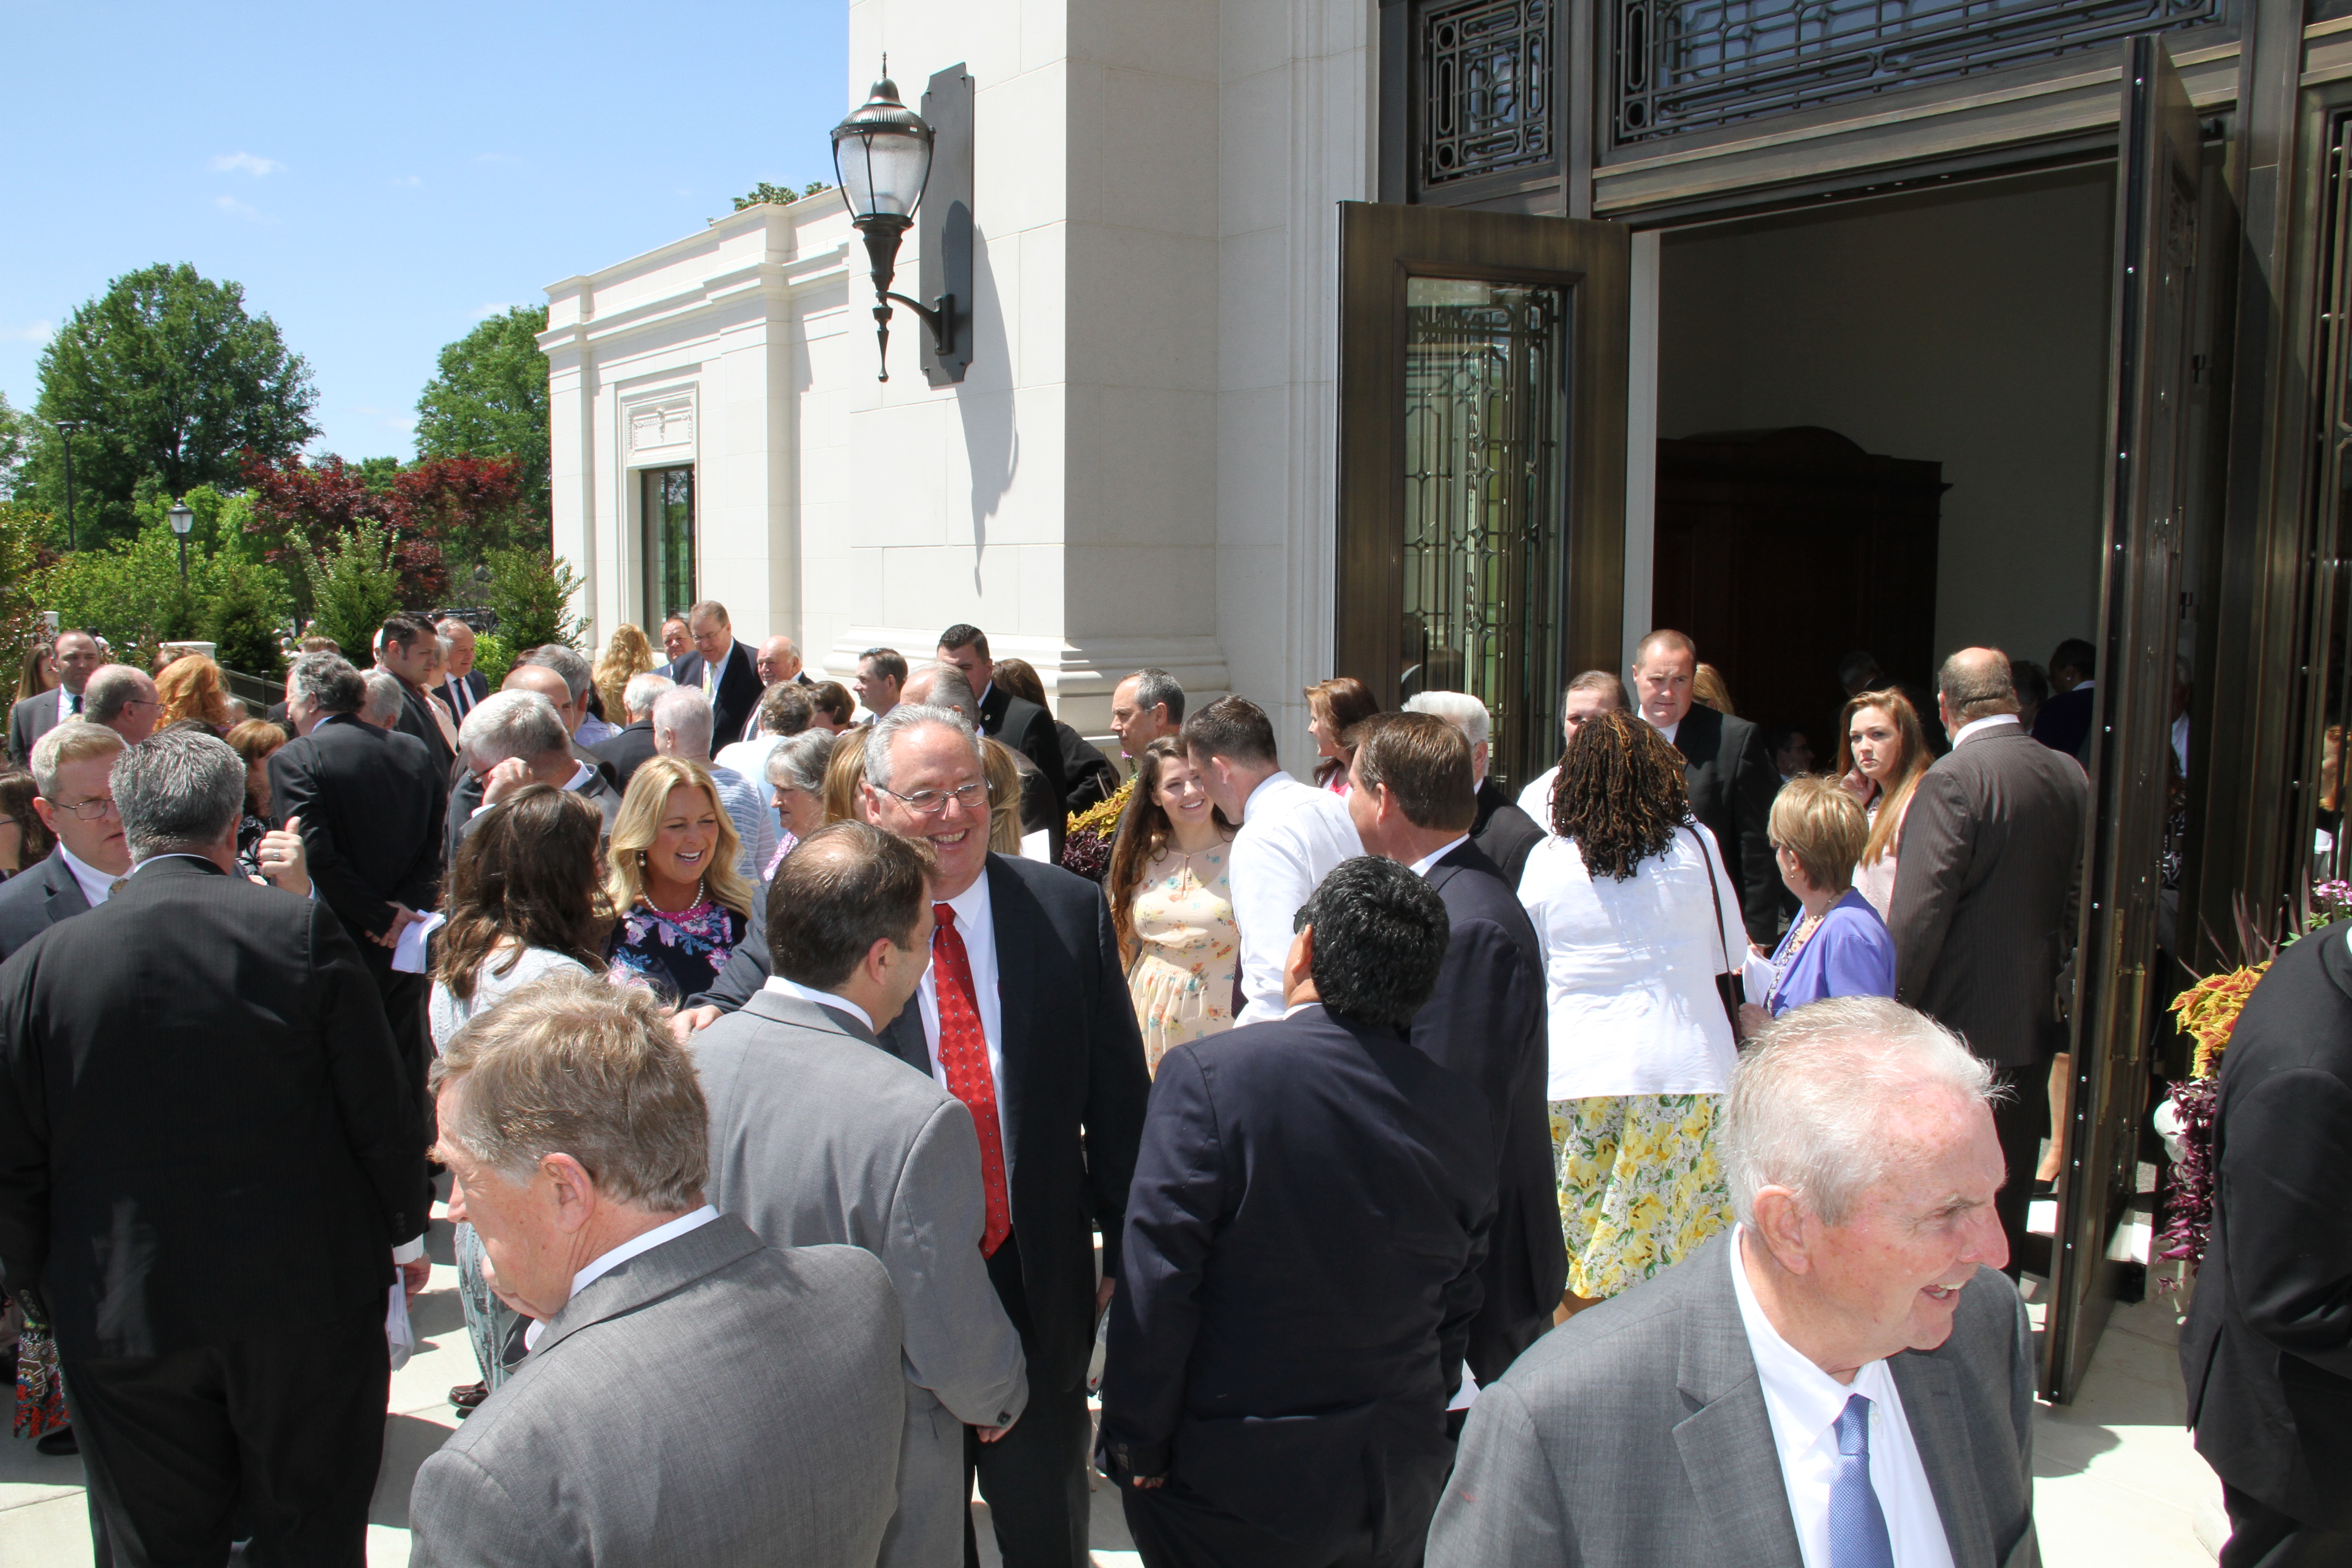 Attendees of the Memphis Tennessee Temple rededication exit the temple after the ceremony on May 5, 2019.